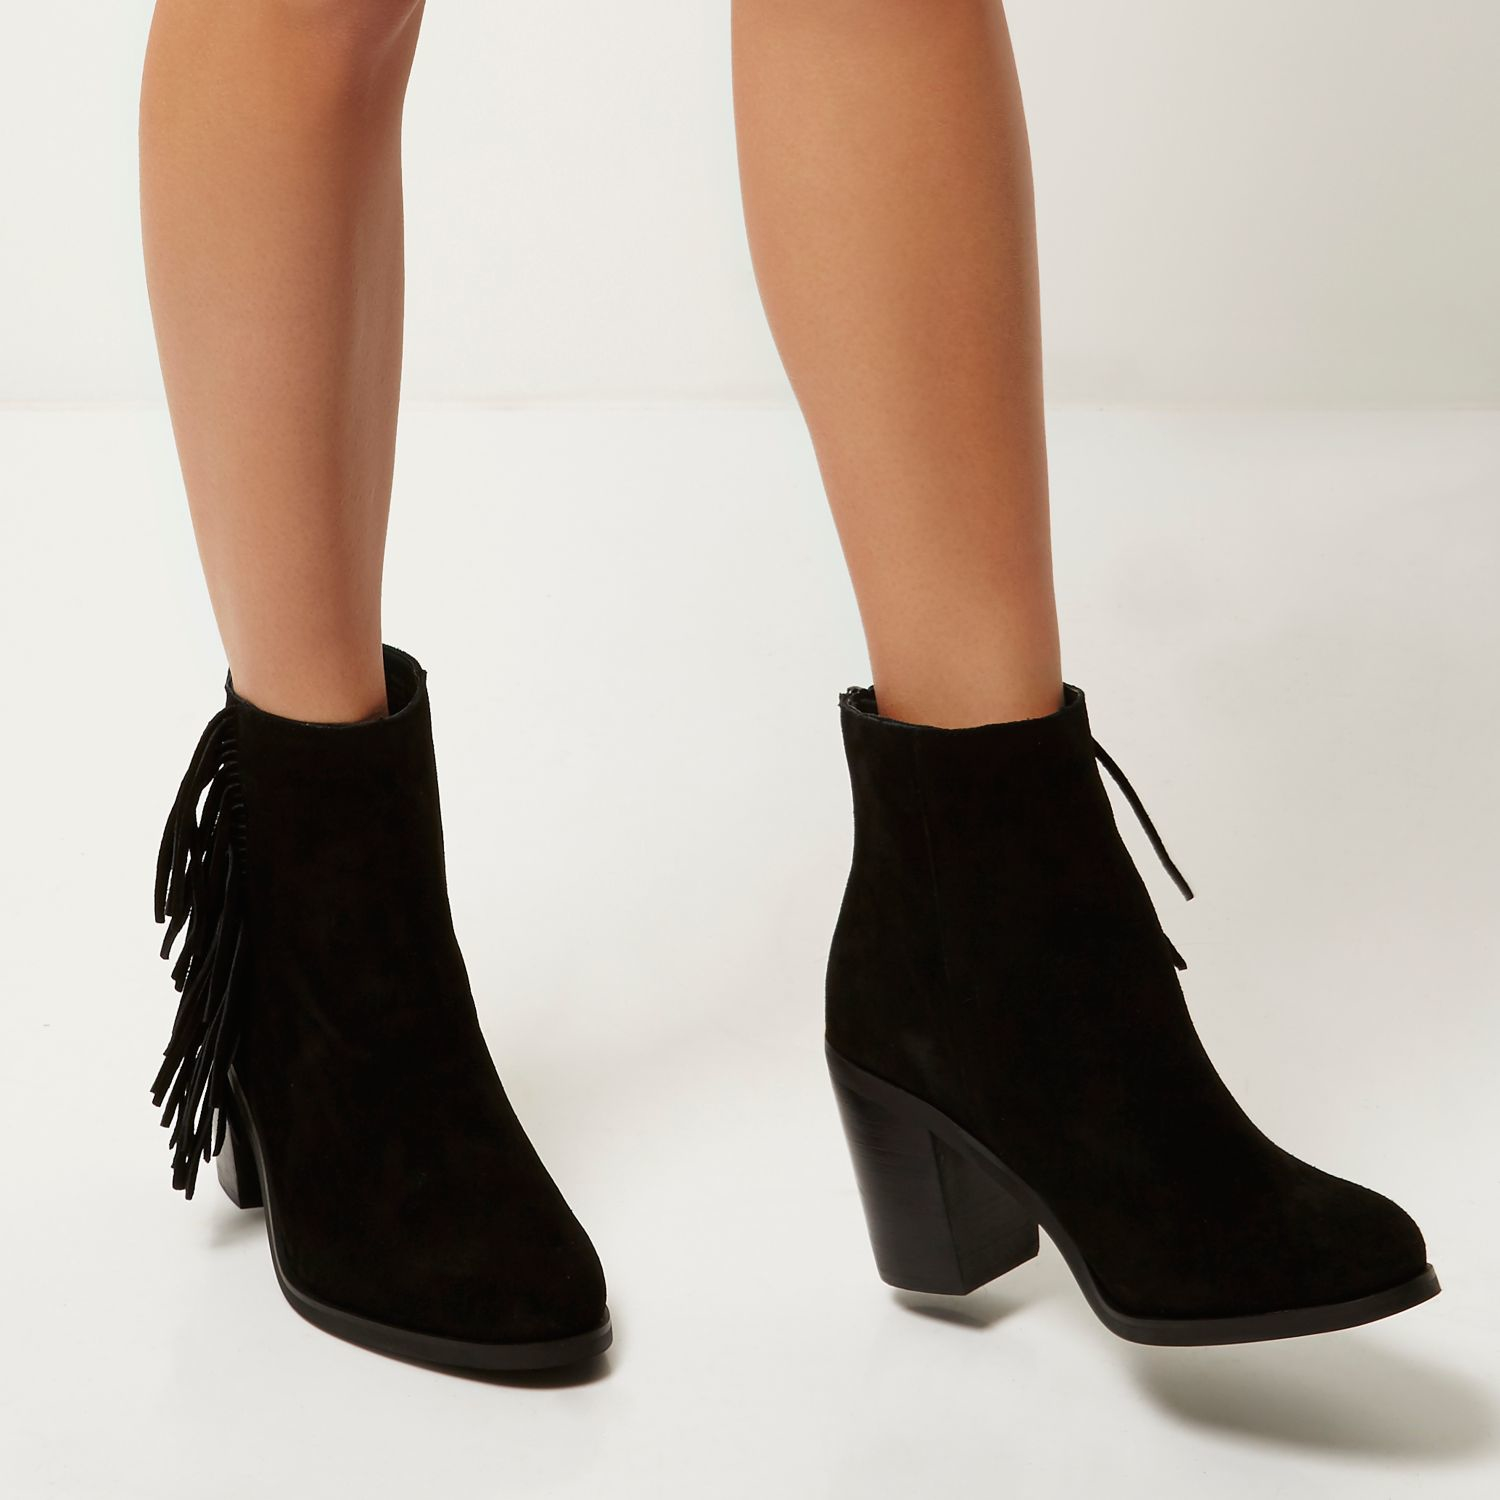 River island Black Suede Fringed Ankle Boots in Black | Lyst